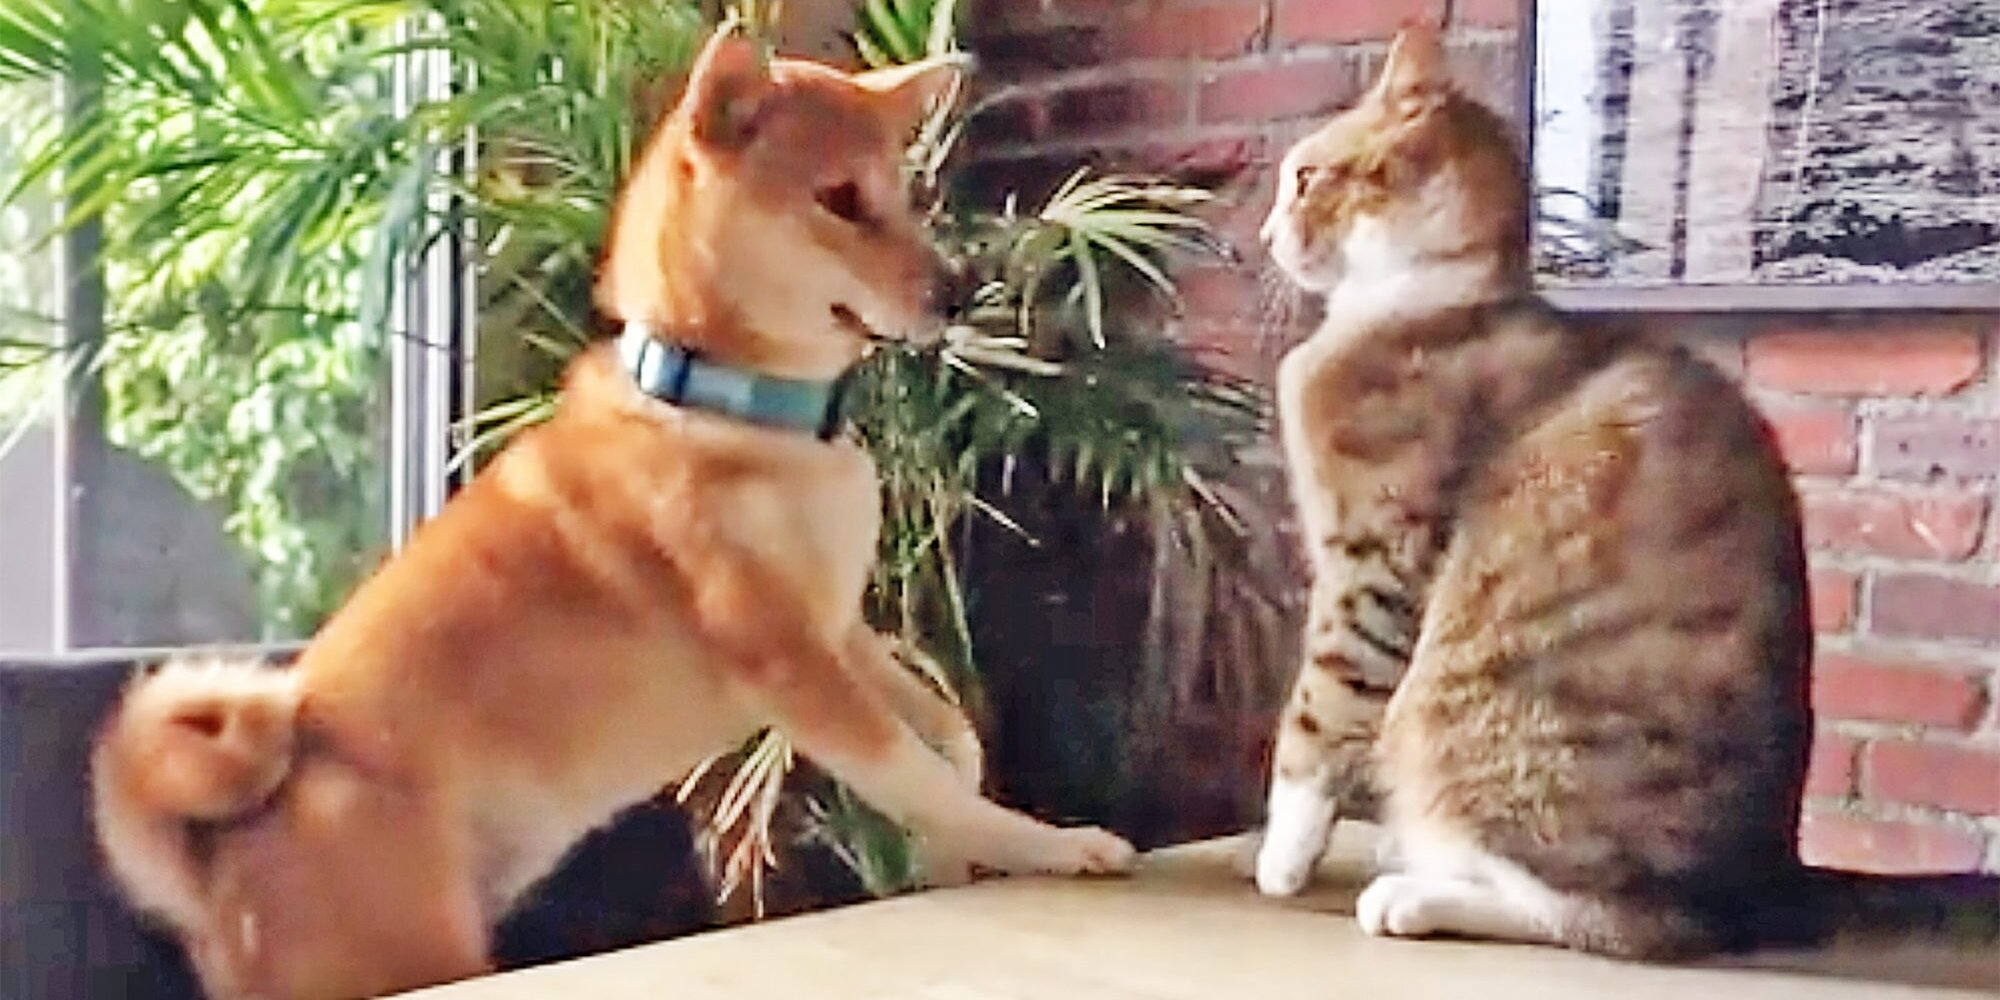 Cat Knocks Dog Off a Chair (Or Does She?)